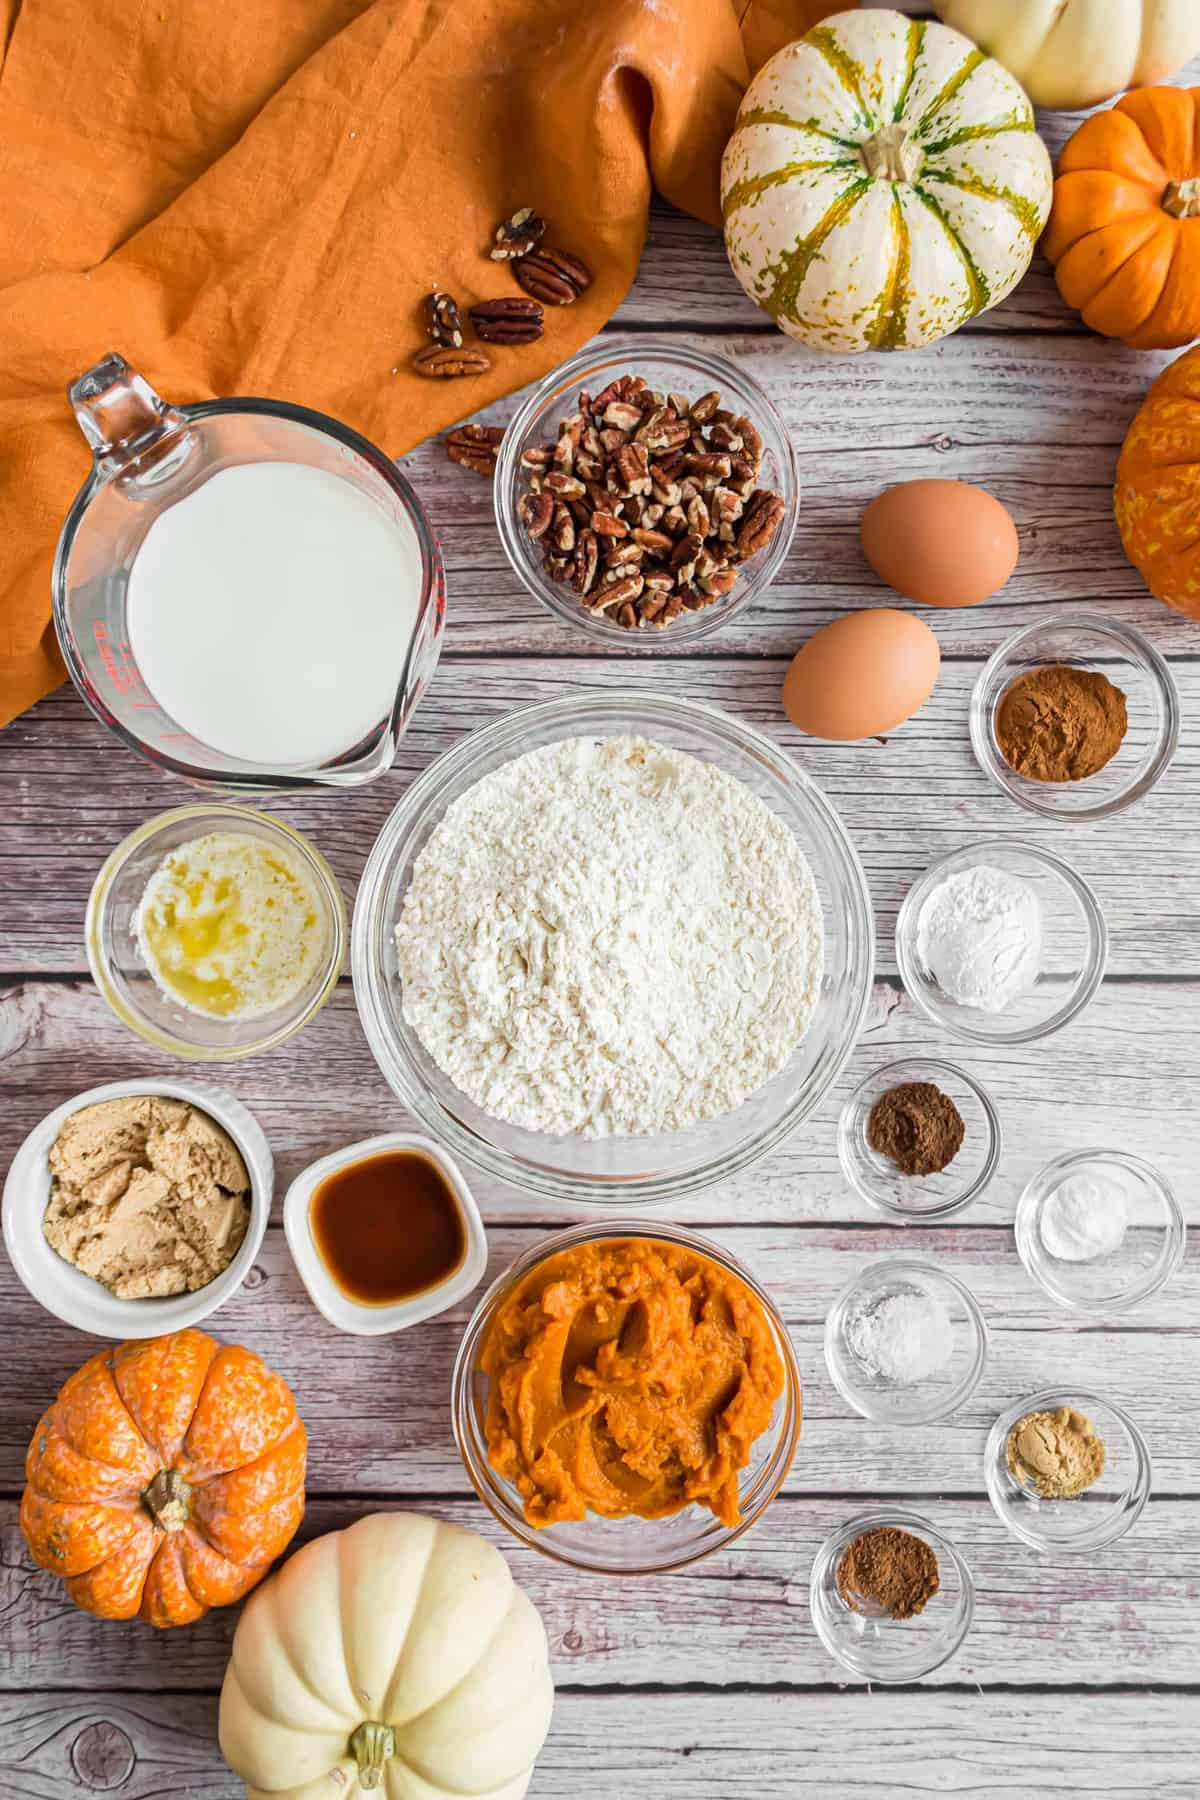 Ingredients needed to make pumpkin pancakes with pecan, most in clear glass bowls. Pumpkins also visible.